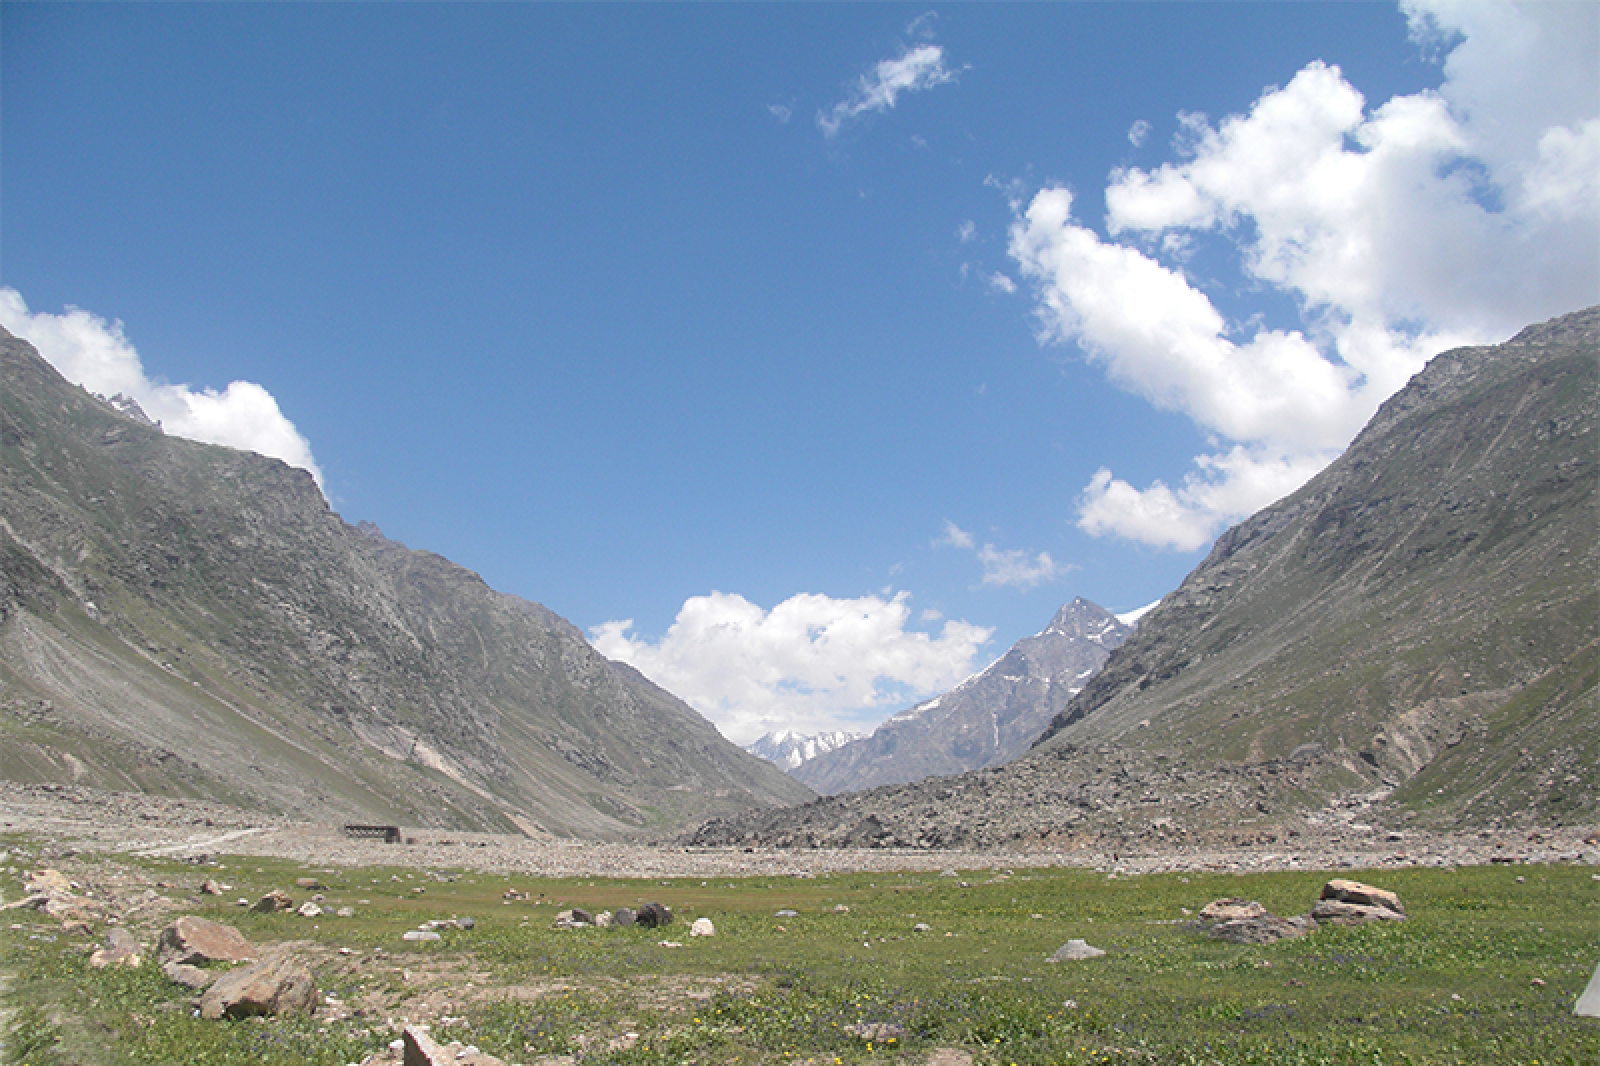 http://m.thegreatnext.com/Trekking Himachal Pradesh Hampta Pass Adventure Travel The Great Next